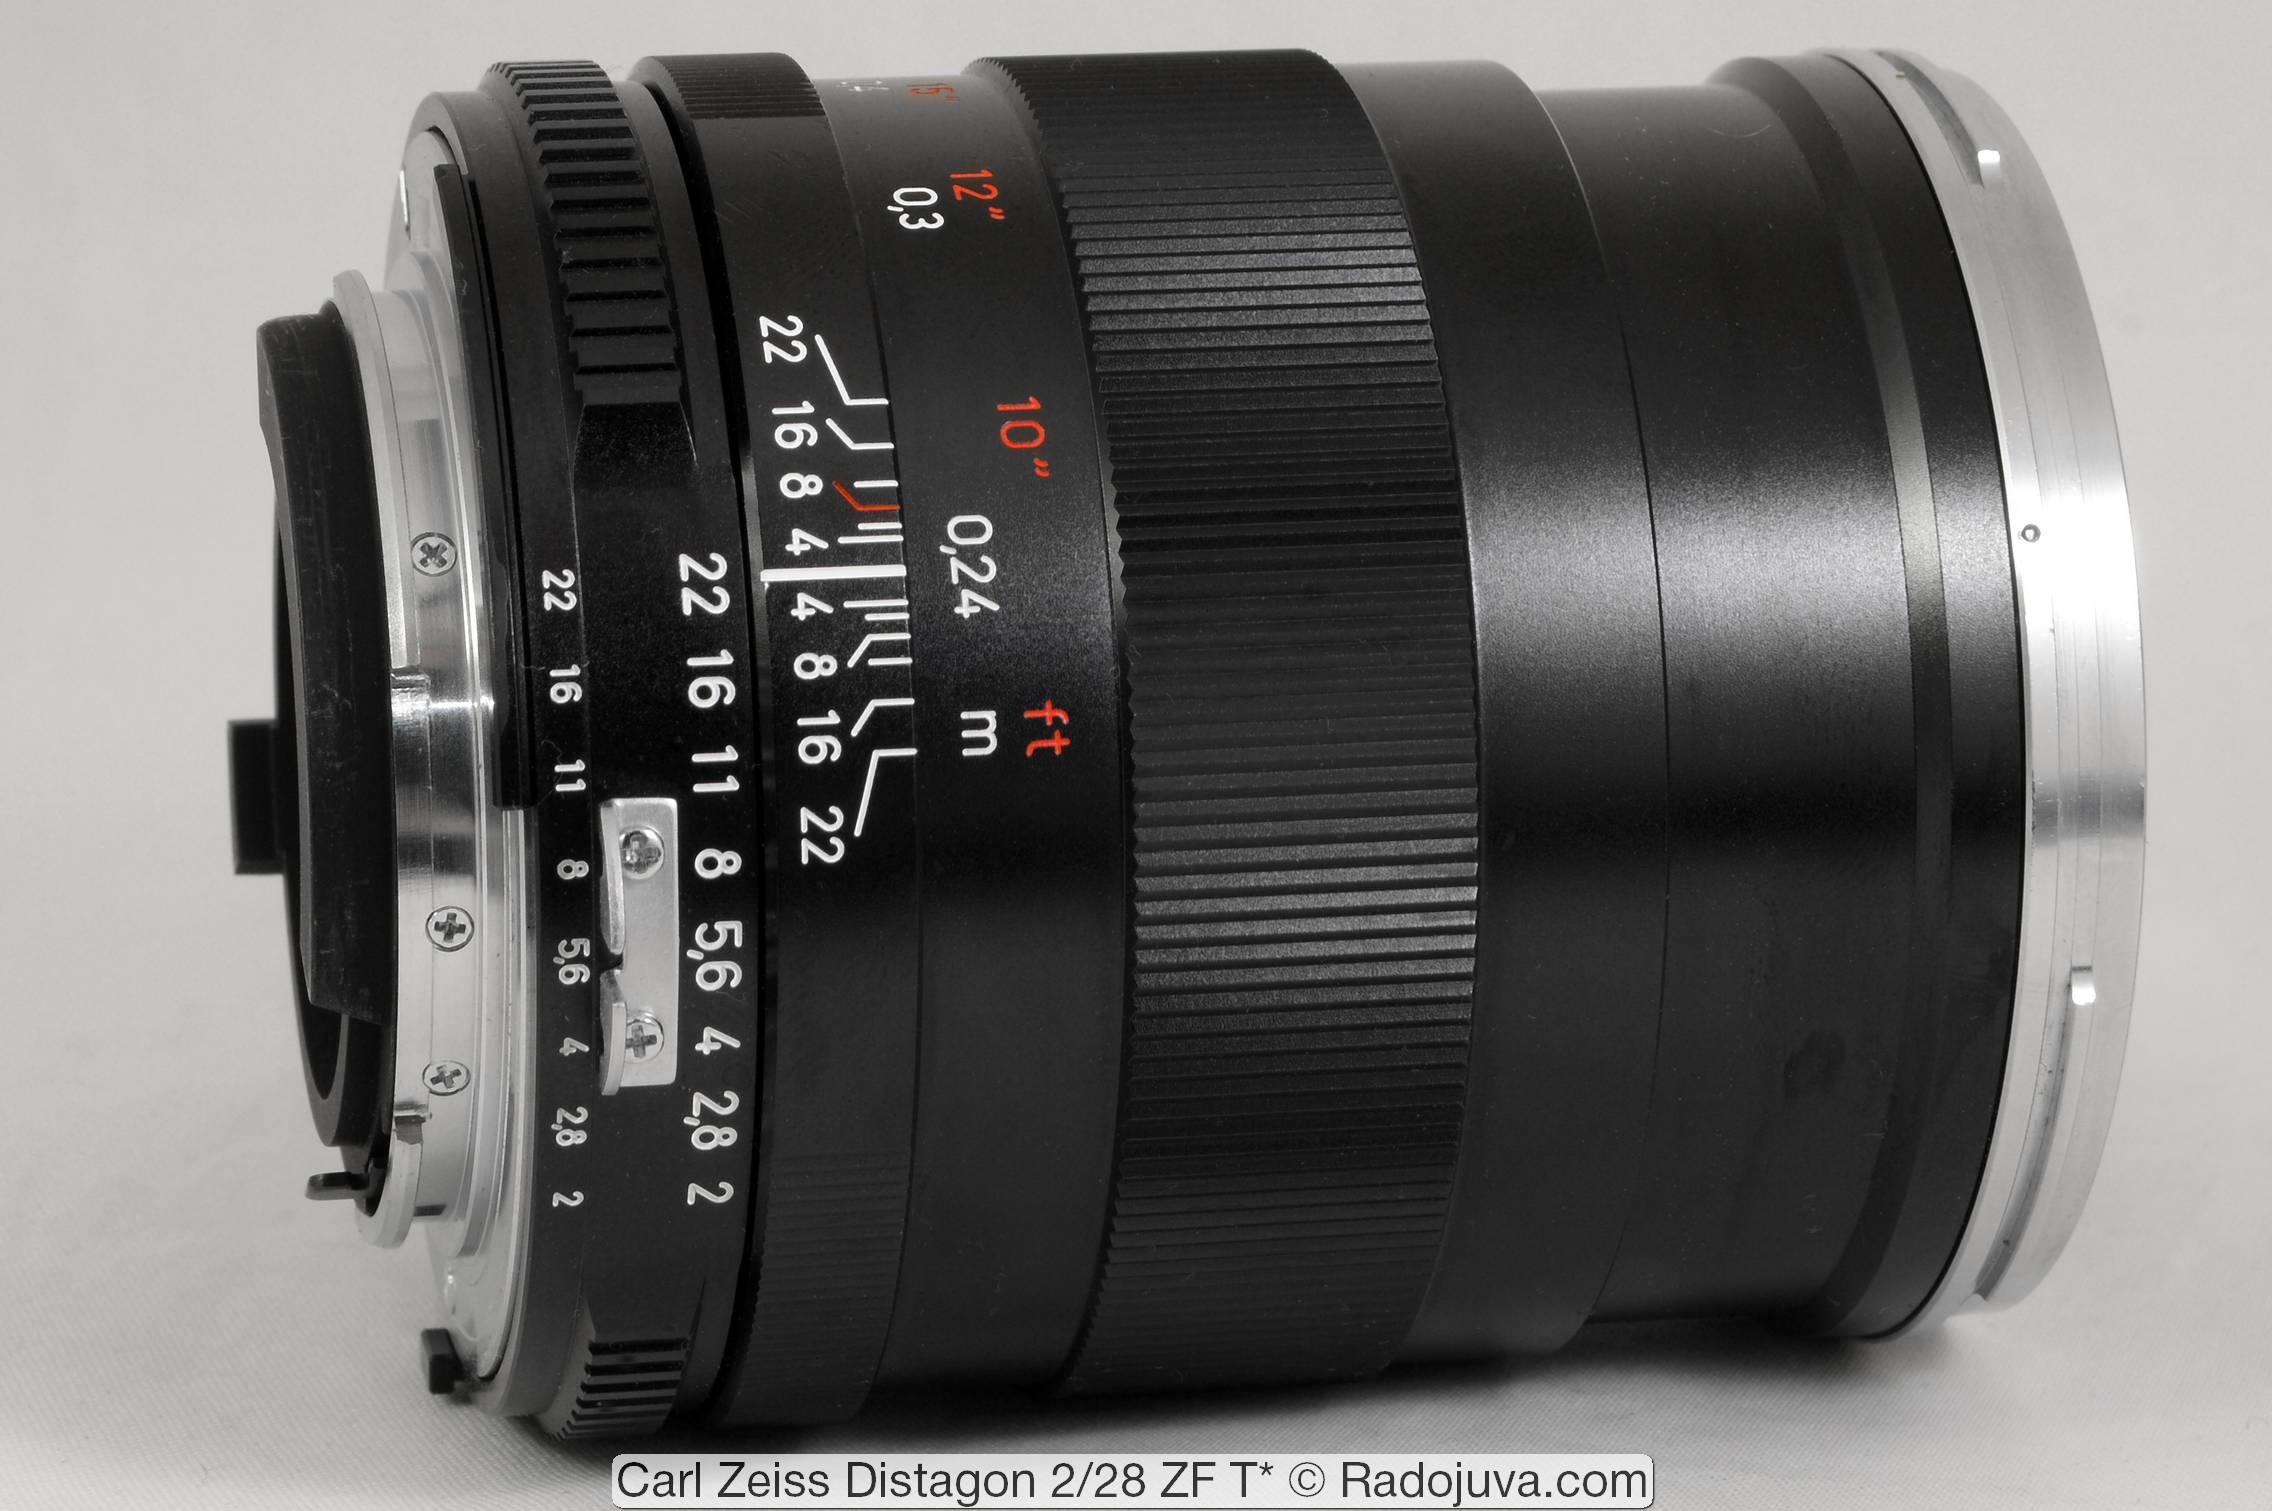 Carl Zeiss Distagon 2/28 ZF T*